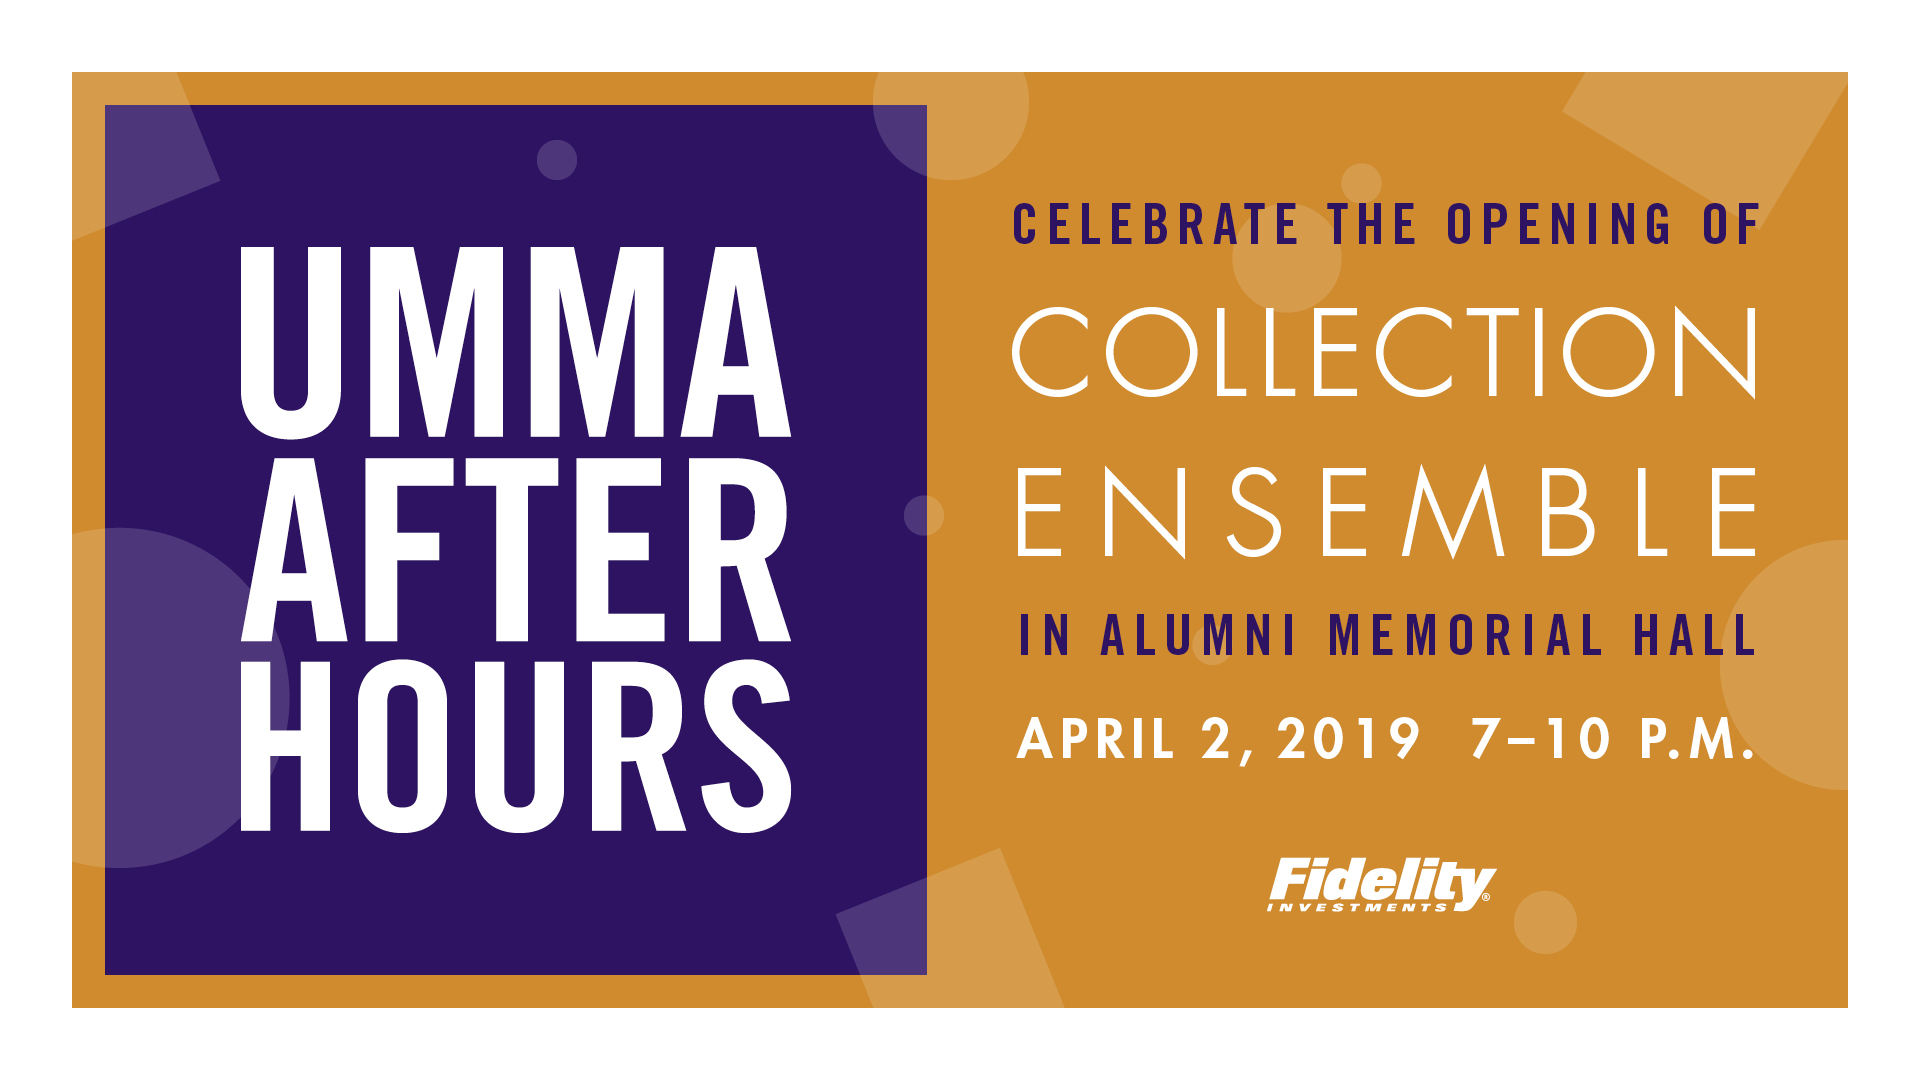 UMMA After Hours April 2 to celebrate the opening of collection ensemble